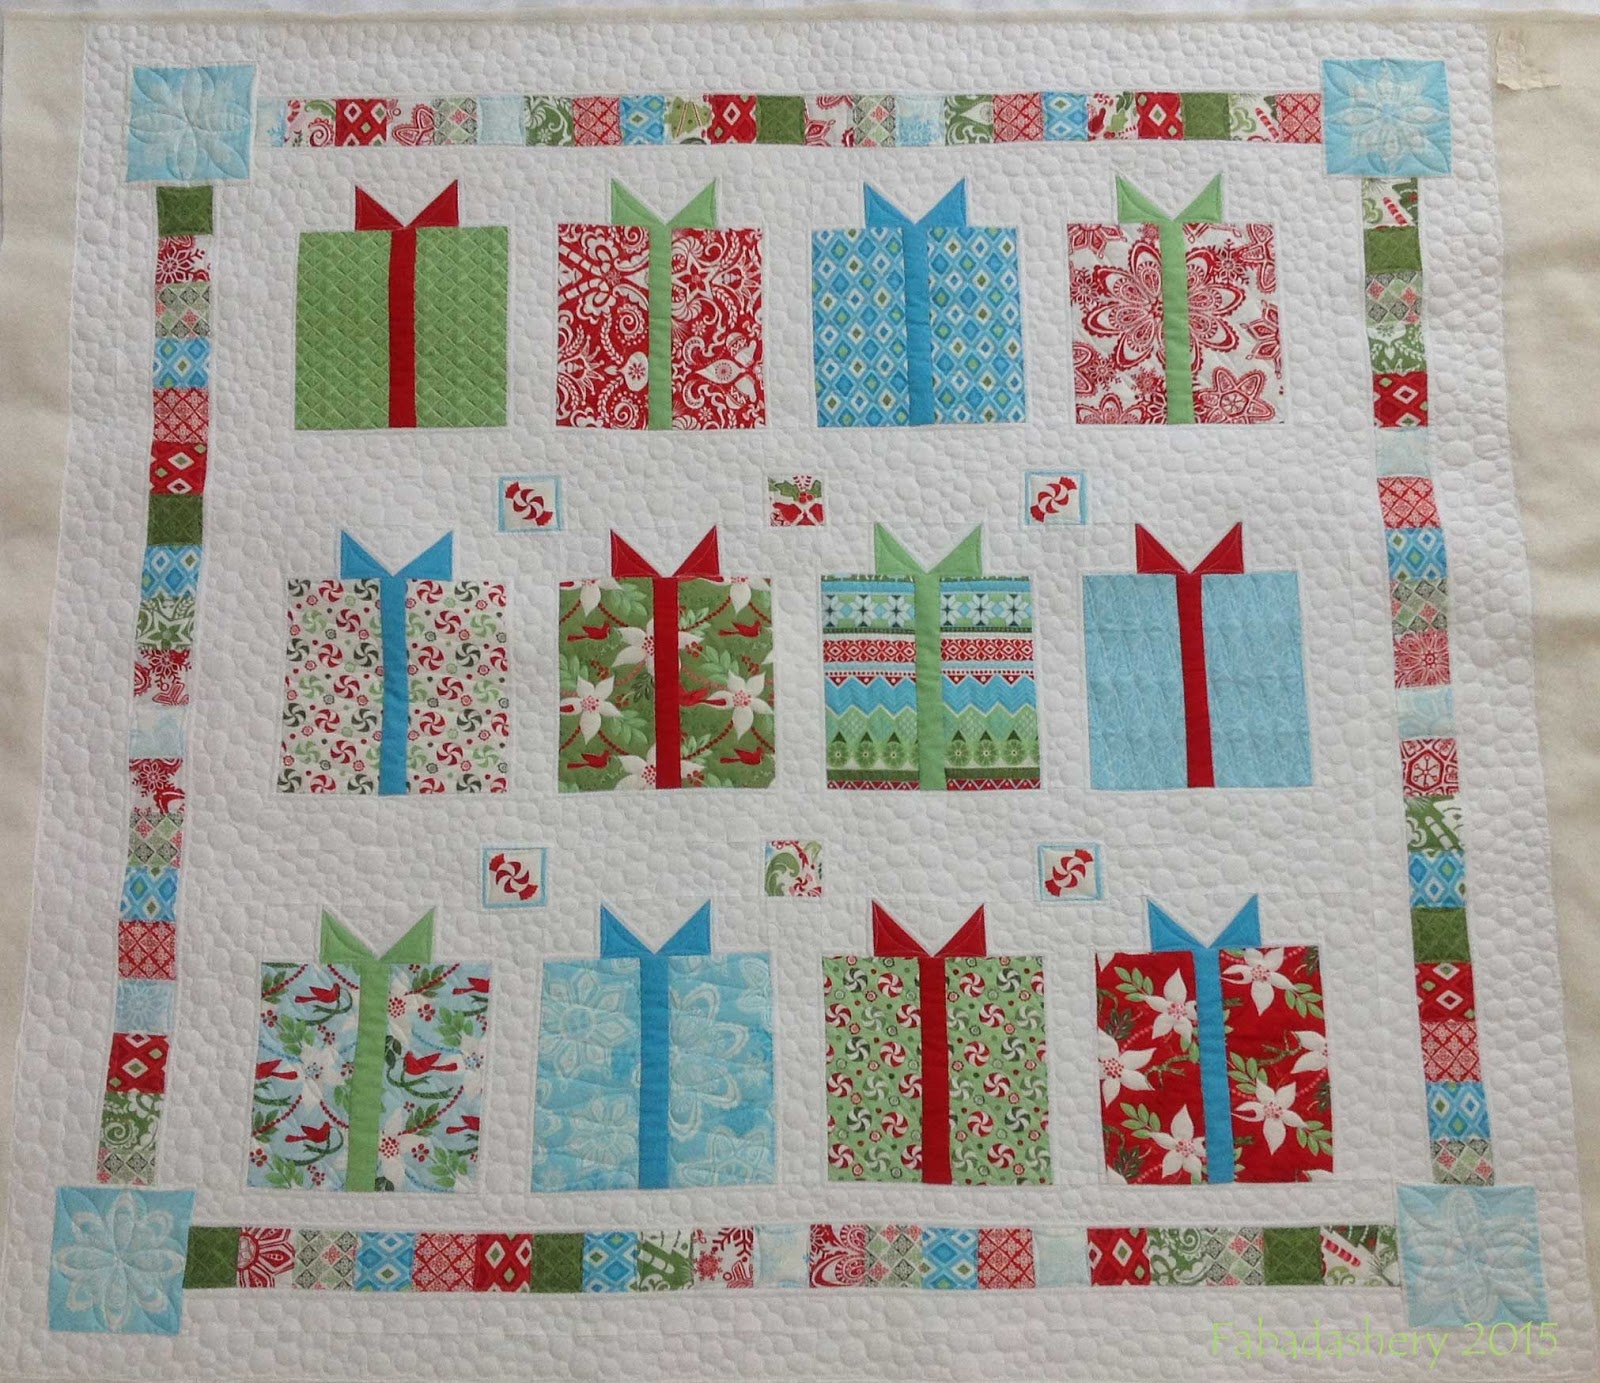 Fabadashery Longarm Quilting: Christmas is coming ..... Flurry ... : flurry quilt pattern - Adamdwight.com